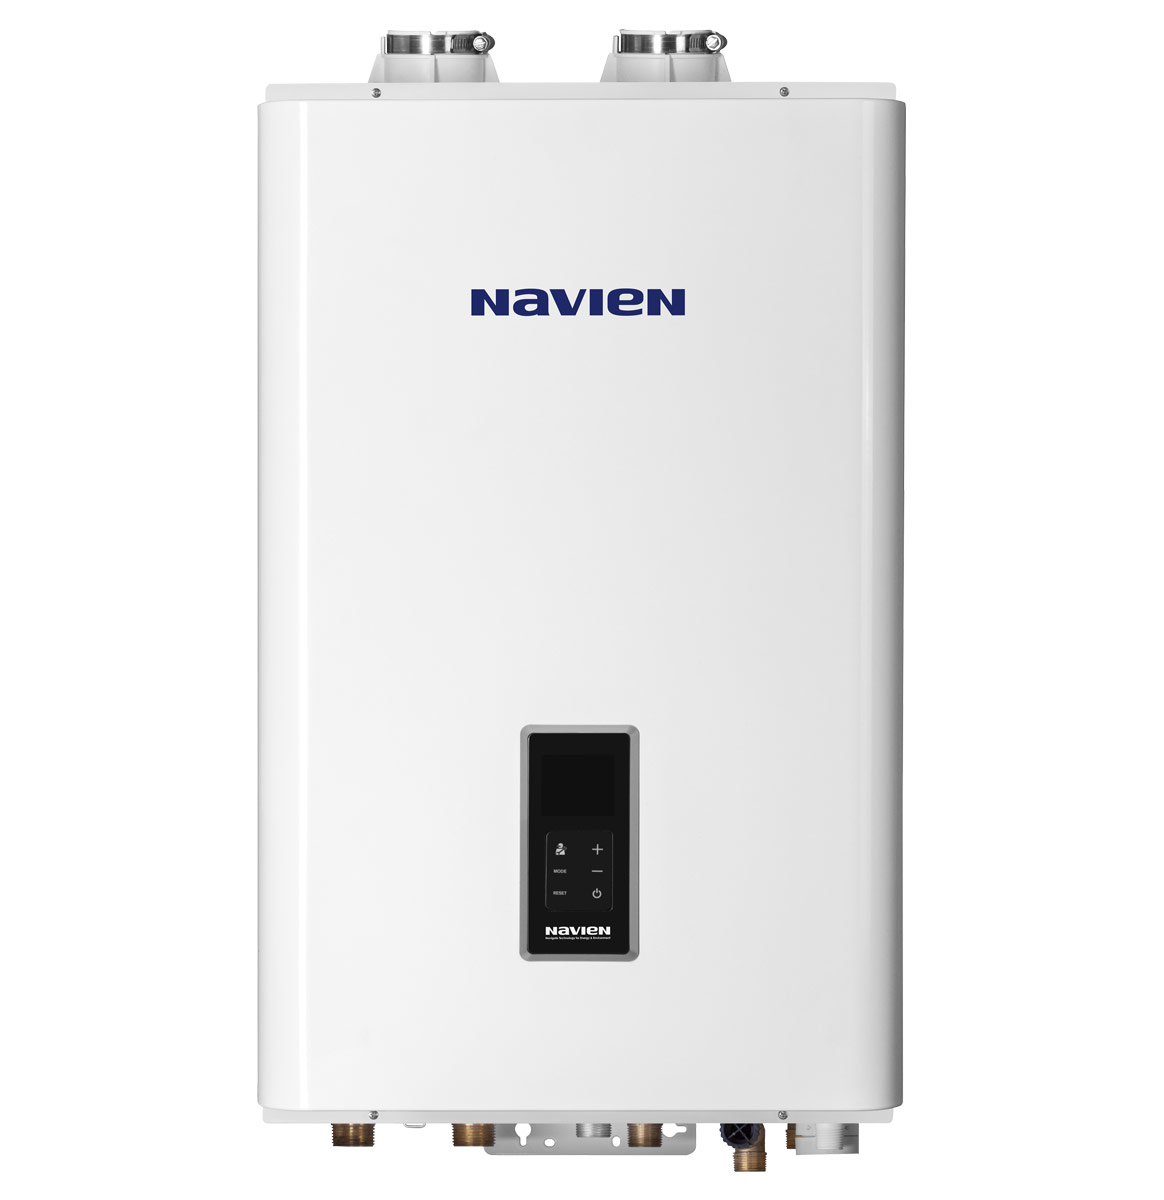 Navien Condensing Combi-Boiler | Washington Energy Services